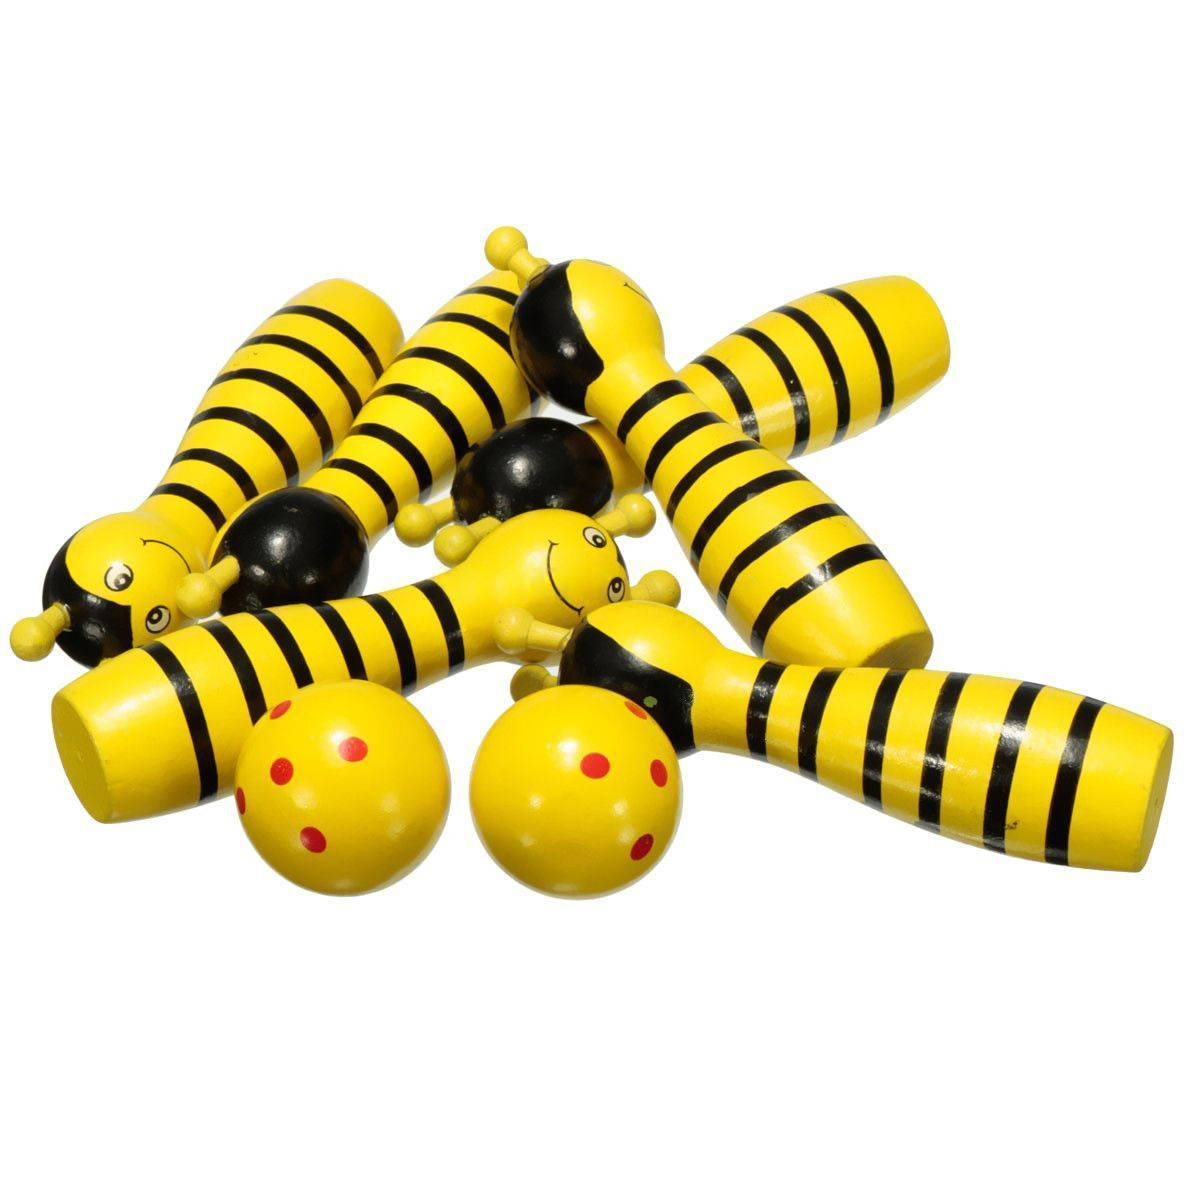 Ball Game Toy : Wooden bowling ball skittle animal shape game for kids